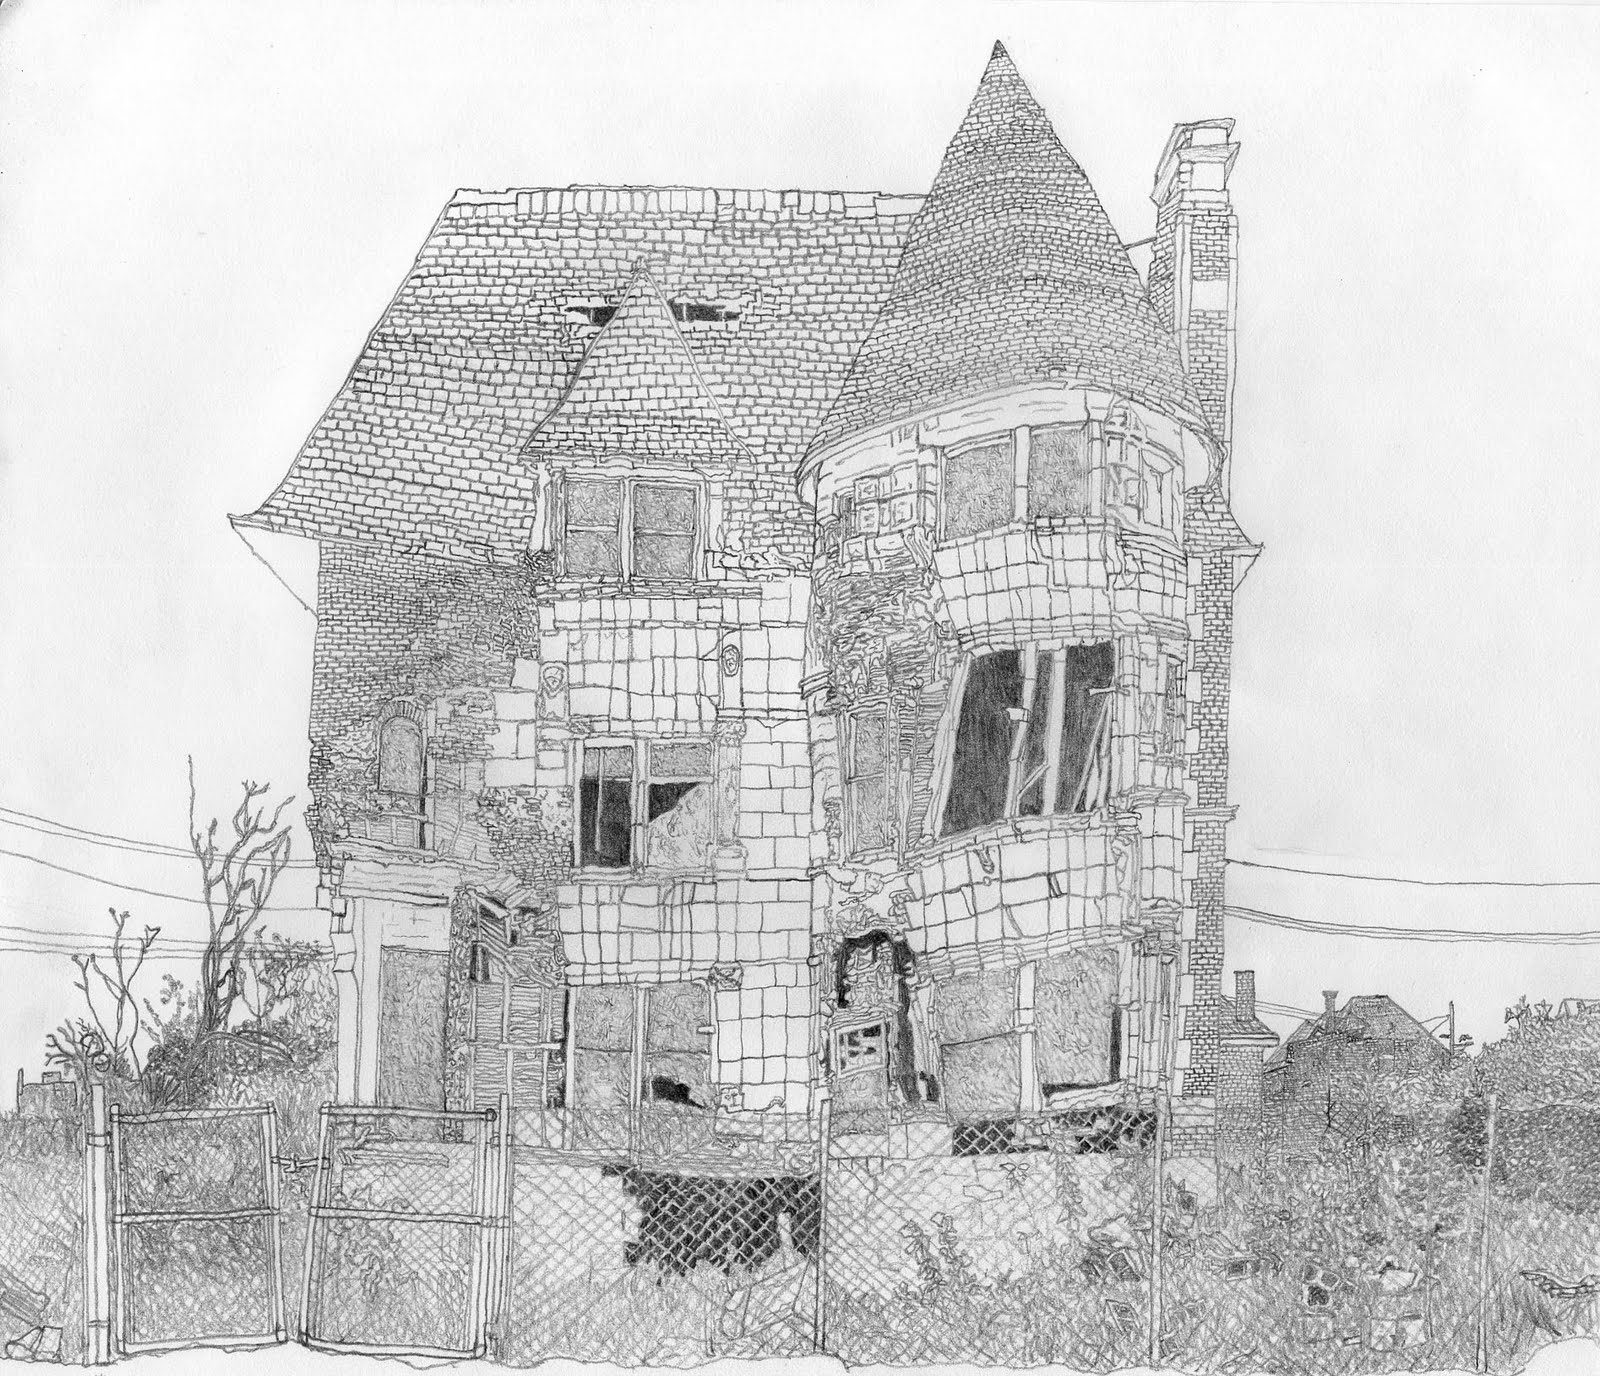 A Reciprocating Saw: William Livingston House, Detroit